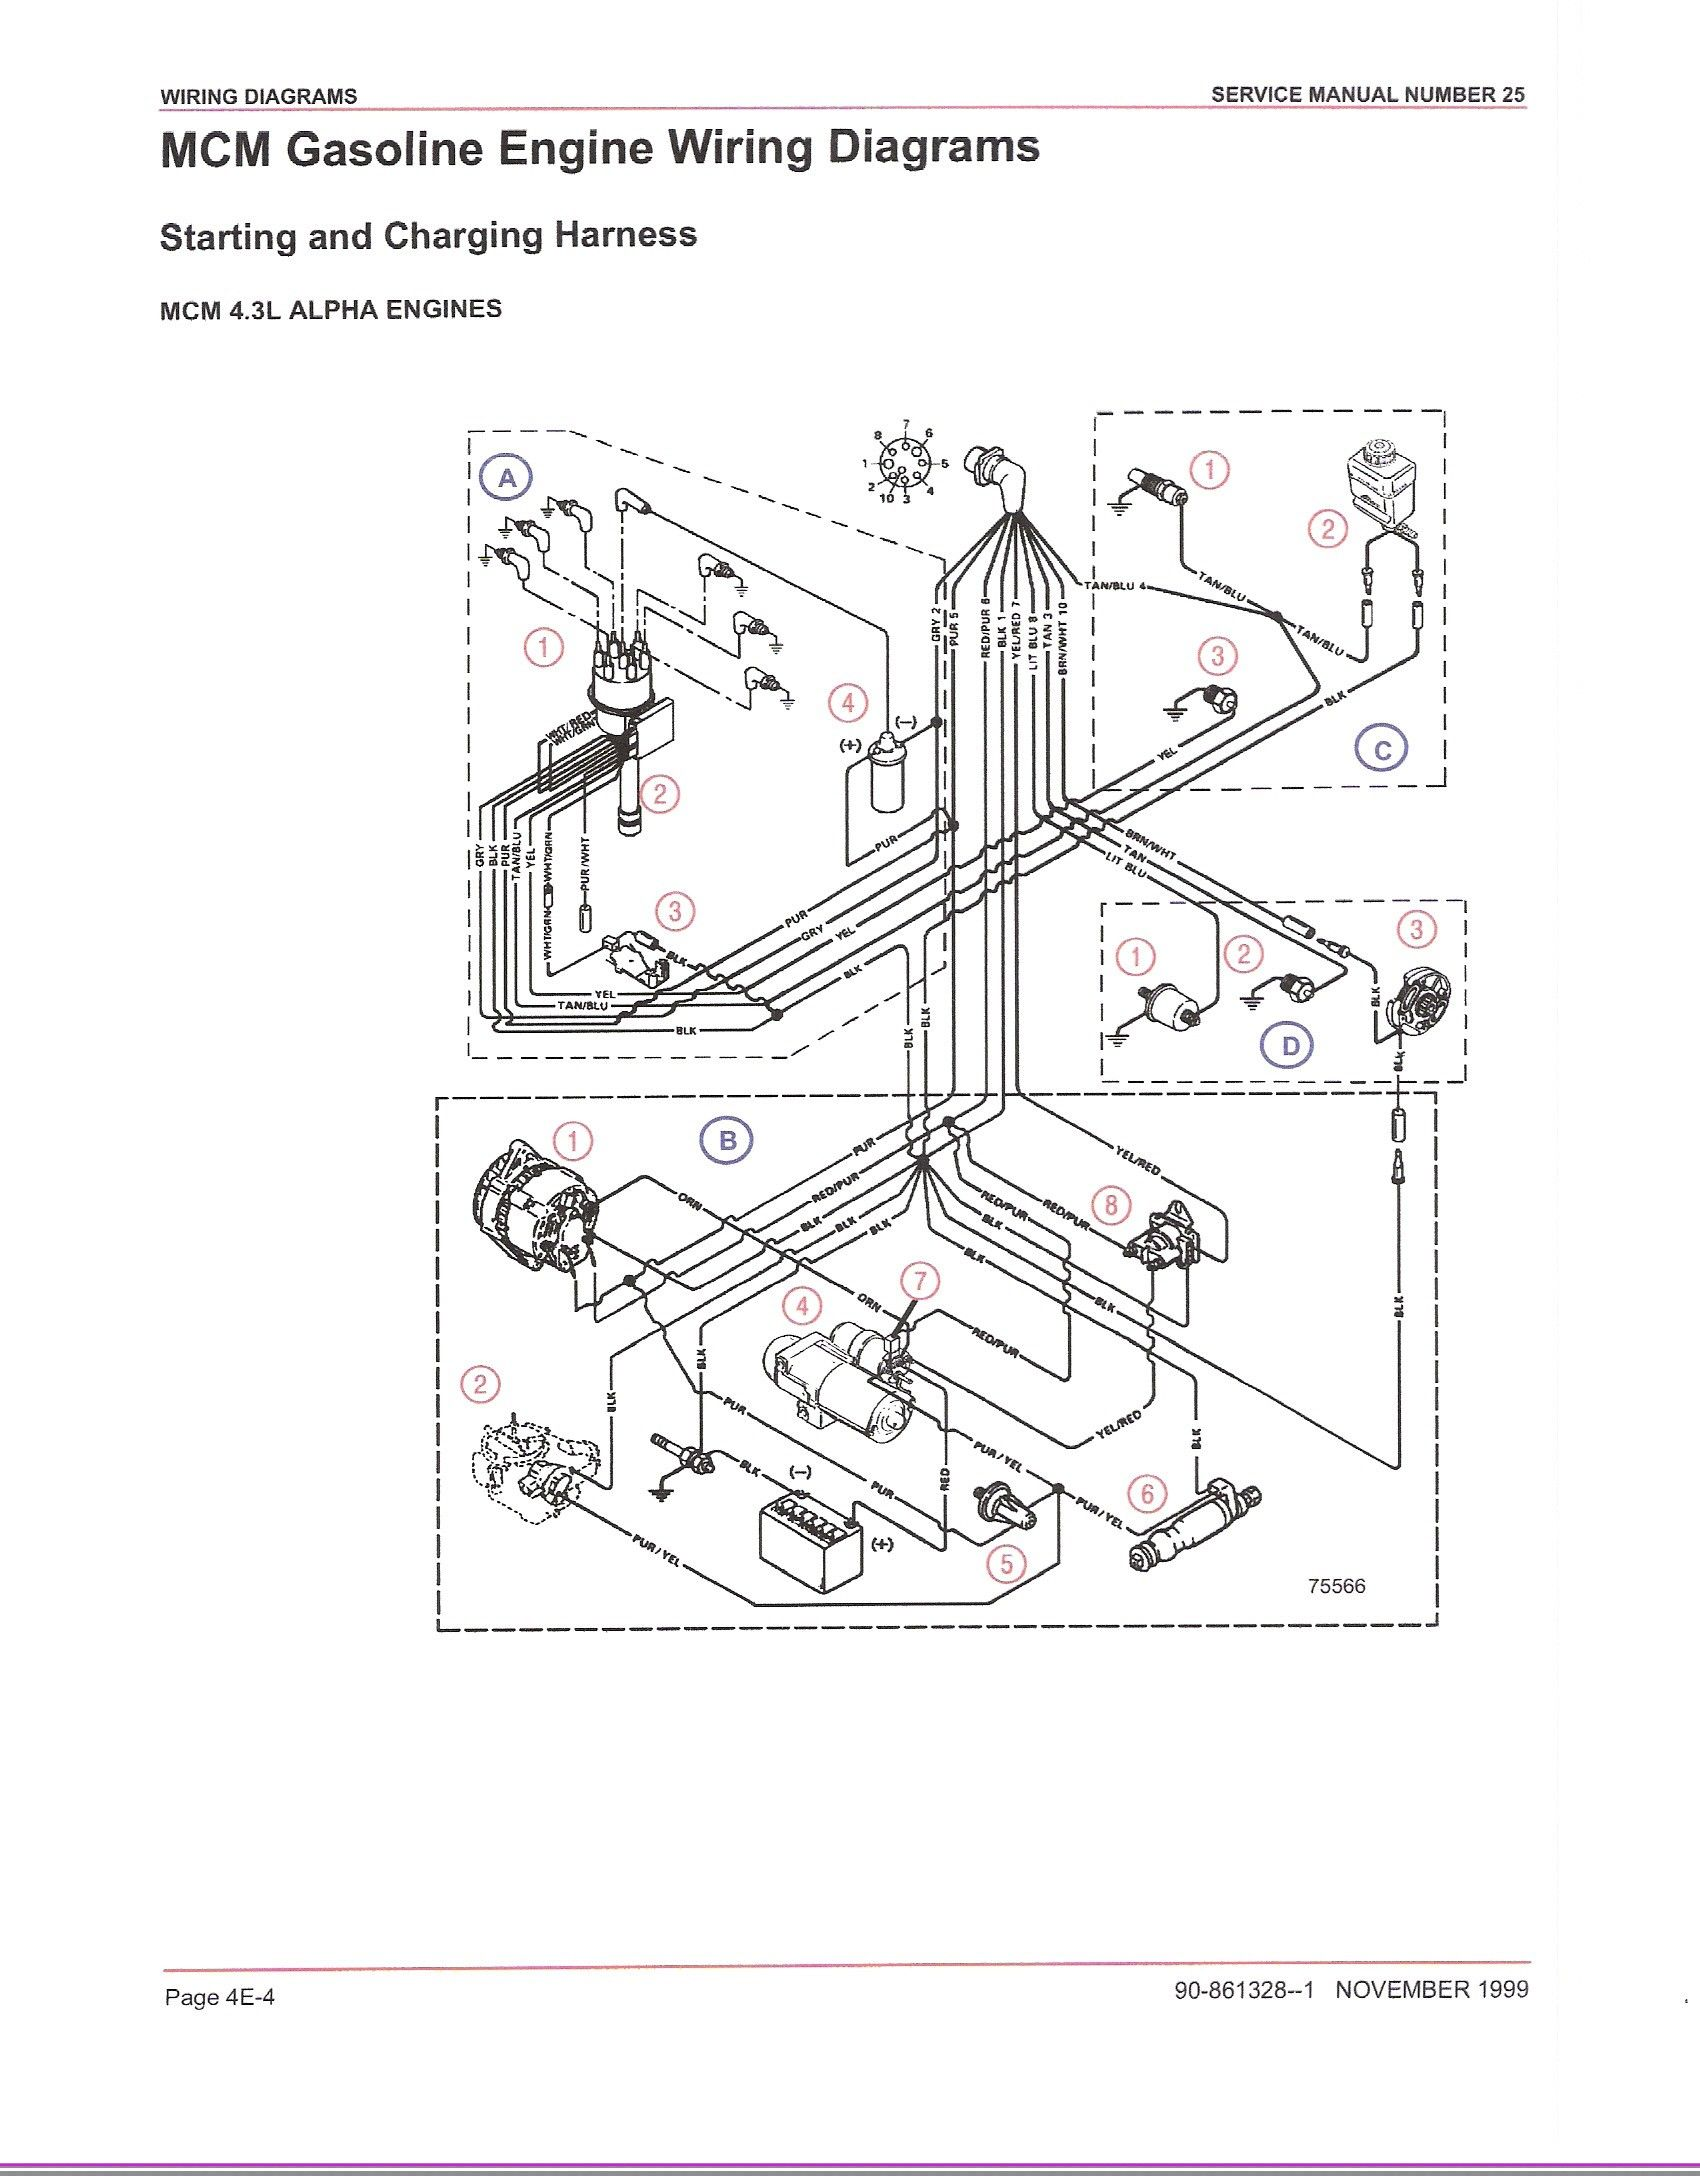 mercruiser 5.7 wiring diagram | diagram, wire, diy cnc router  pinterest